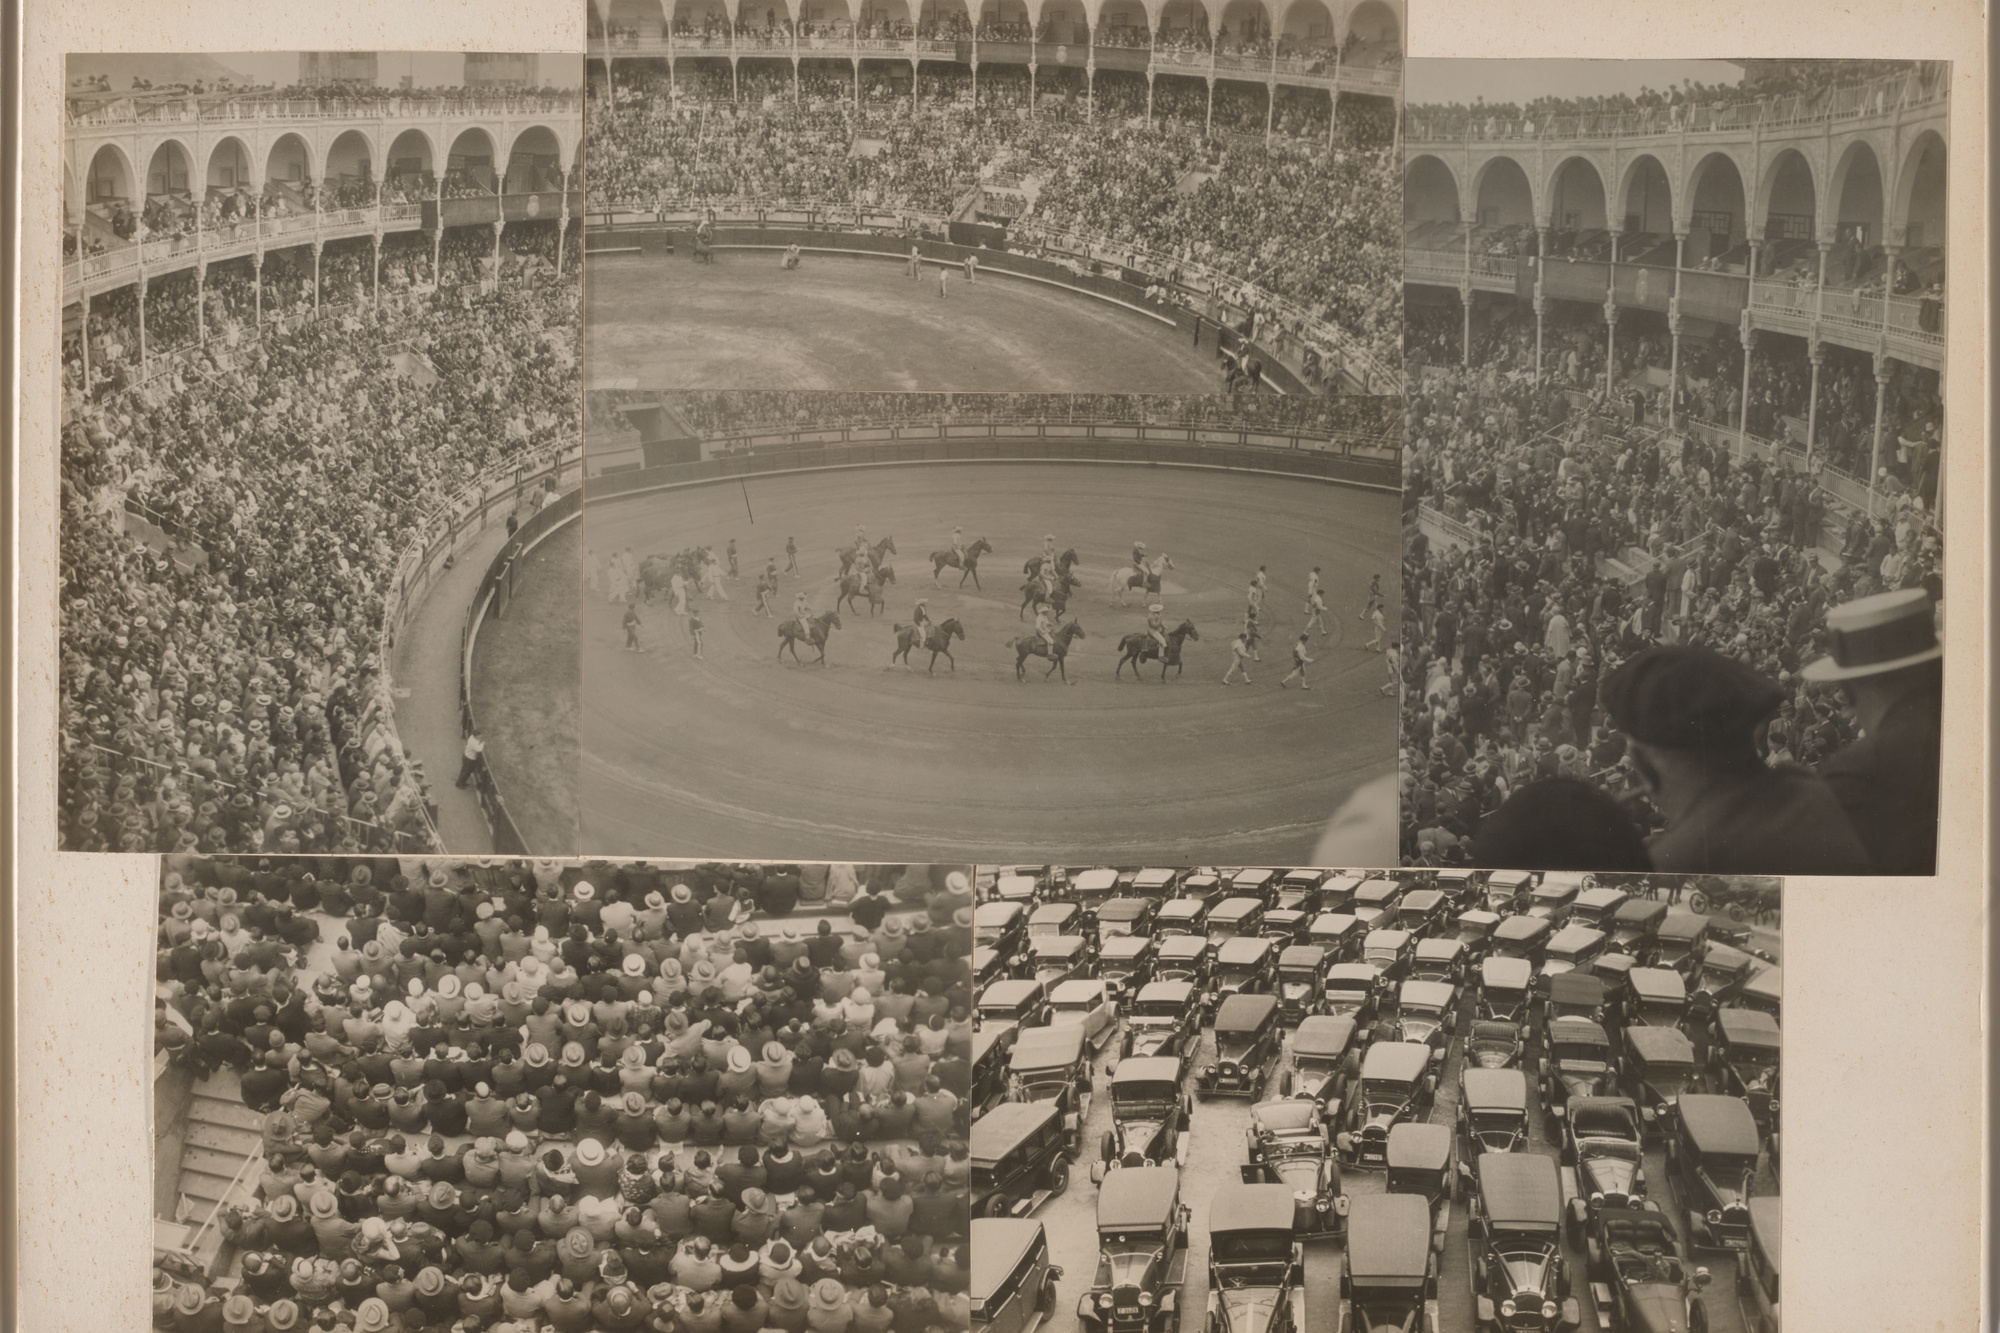 Josef Albers. Untitled (​​Bullfight​,​ San Sebastian). 1929/1932. Gelatin silver prints mounted to board. Overall 11 5/8 × 16 3/8″ (29.5 × 41.6 cm). Acquired through the generosity of Jo Carole and Ronald S. Lauder, and Jon L. Stryker Object number 1022.2015 Copyright © 2016 The Josef and Anni Albers Foundation / Artists Rights Society (ARS), New York